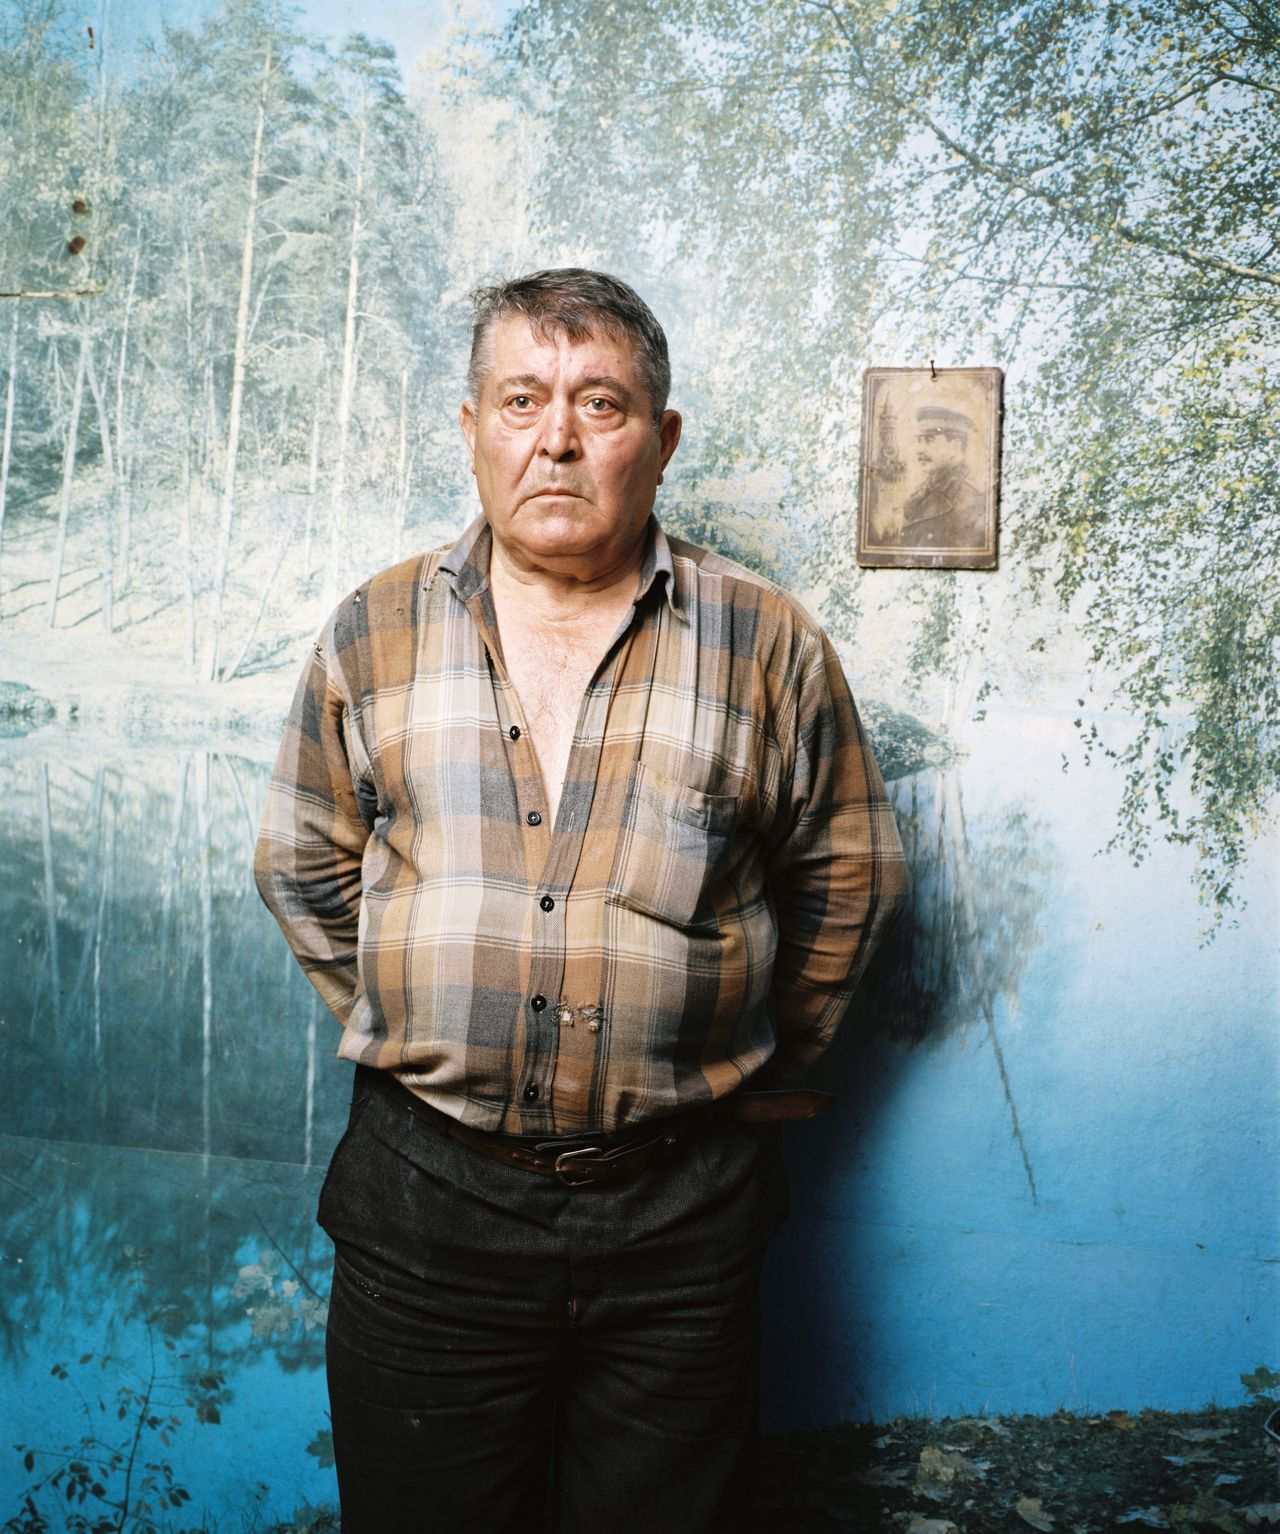 Khetakhurovo, SOUTH OSSETIA, 2011 - Zaur - a big fan of Stalin - is completely deperate as the back of his house is ruined by a shrapnel. He is to old to repair it, he doesn't have money and he is blaming the government of corruption, 'otherwise they would have repaired my house'.